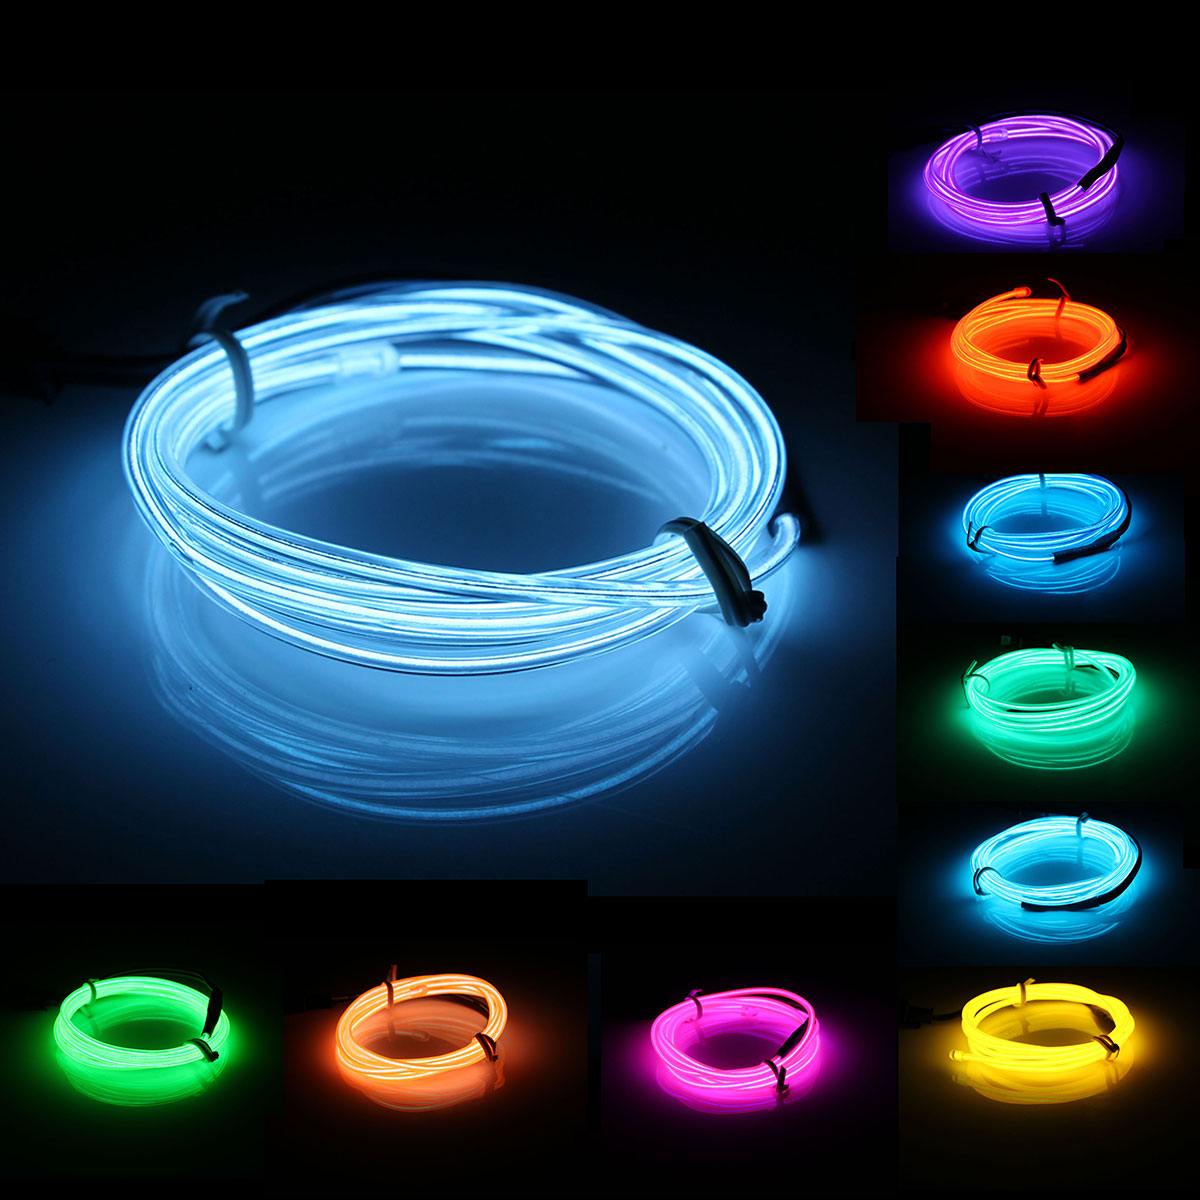 1M EL LED EL Wire Flexible Soft Tube Wire Neon Glow Car Rope 10 Colors  LED Strip DC 12V Light Party Christmas Decoration